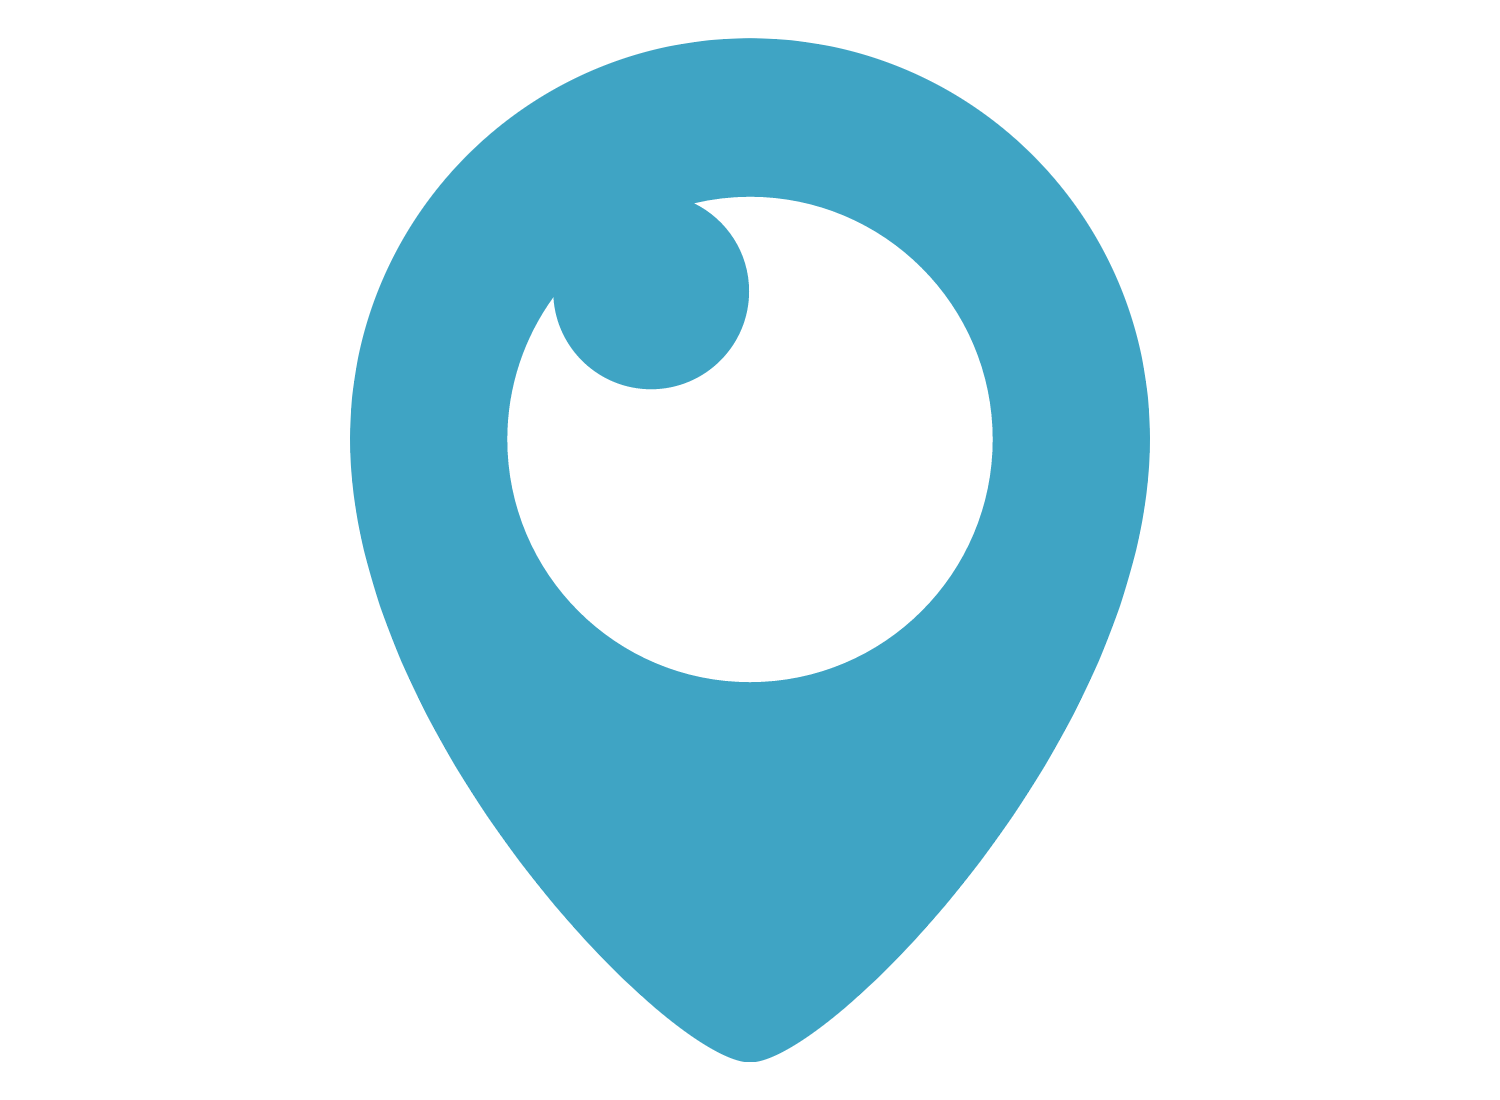 Periscope logo periscope symbol meaning history and evolution the periscope logo is built around a stylized depiction of a periscope and includes an eye metaphor symbolizing a person looking through the device biocorpaavc Images